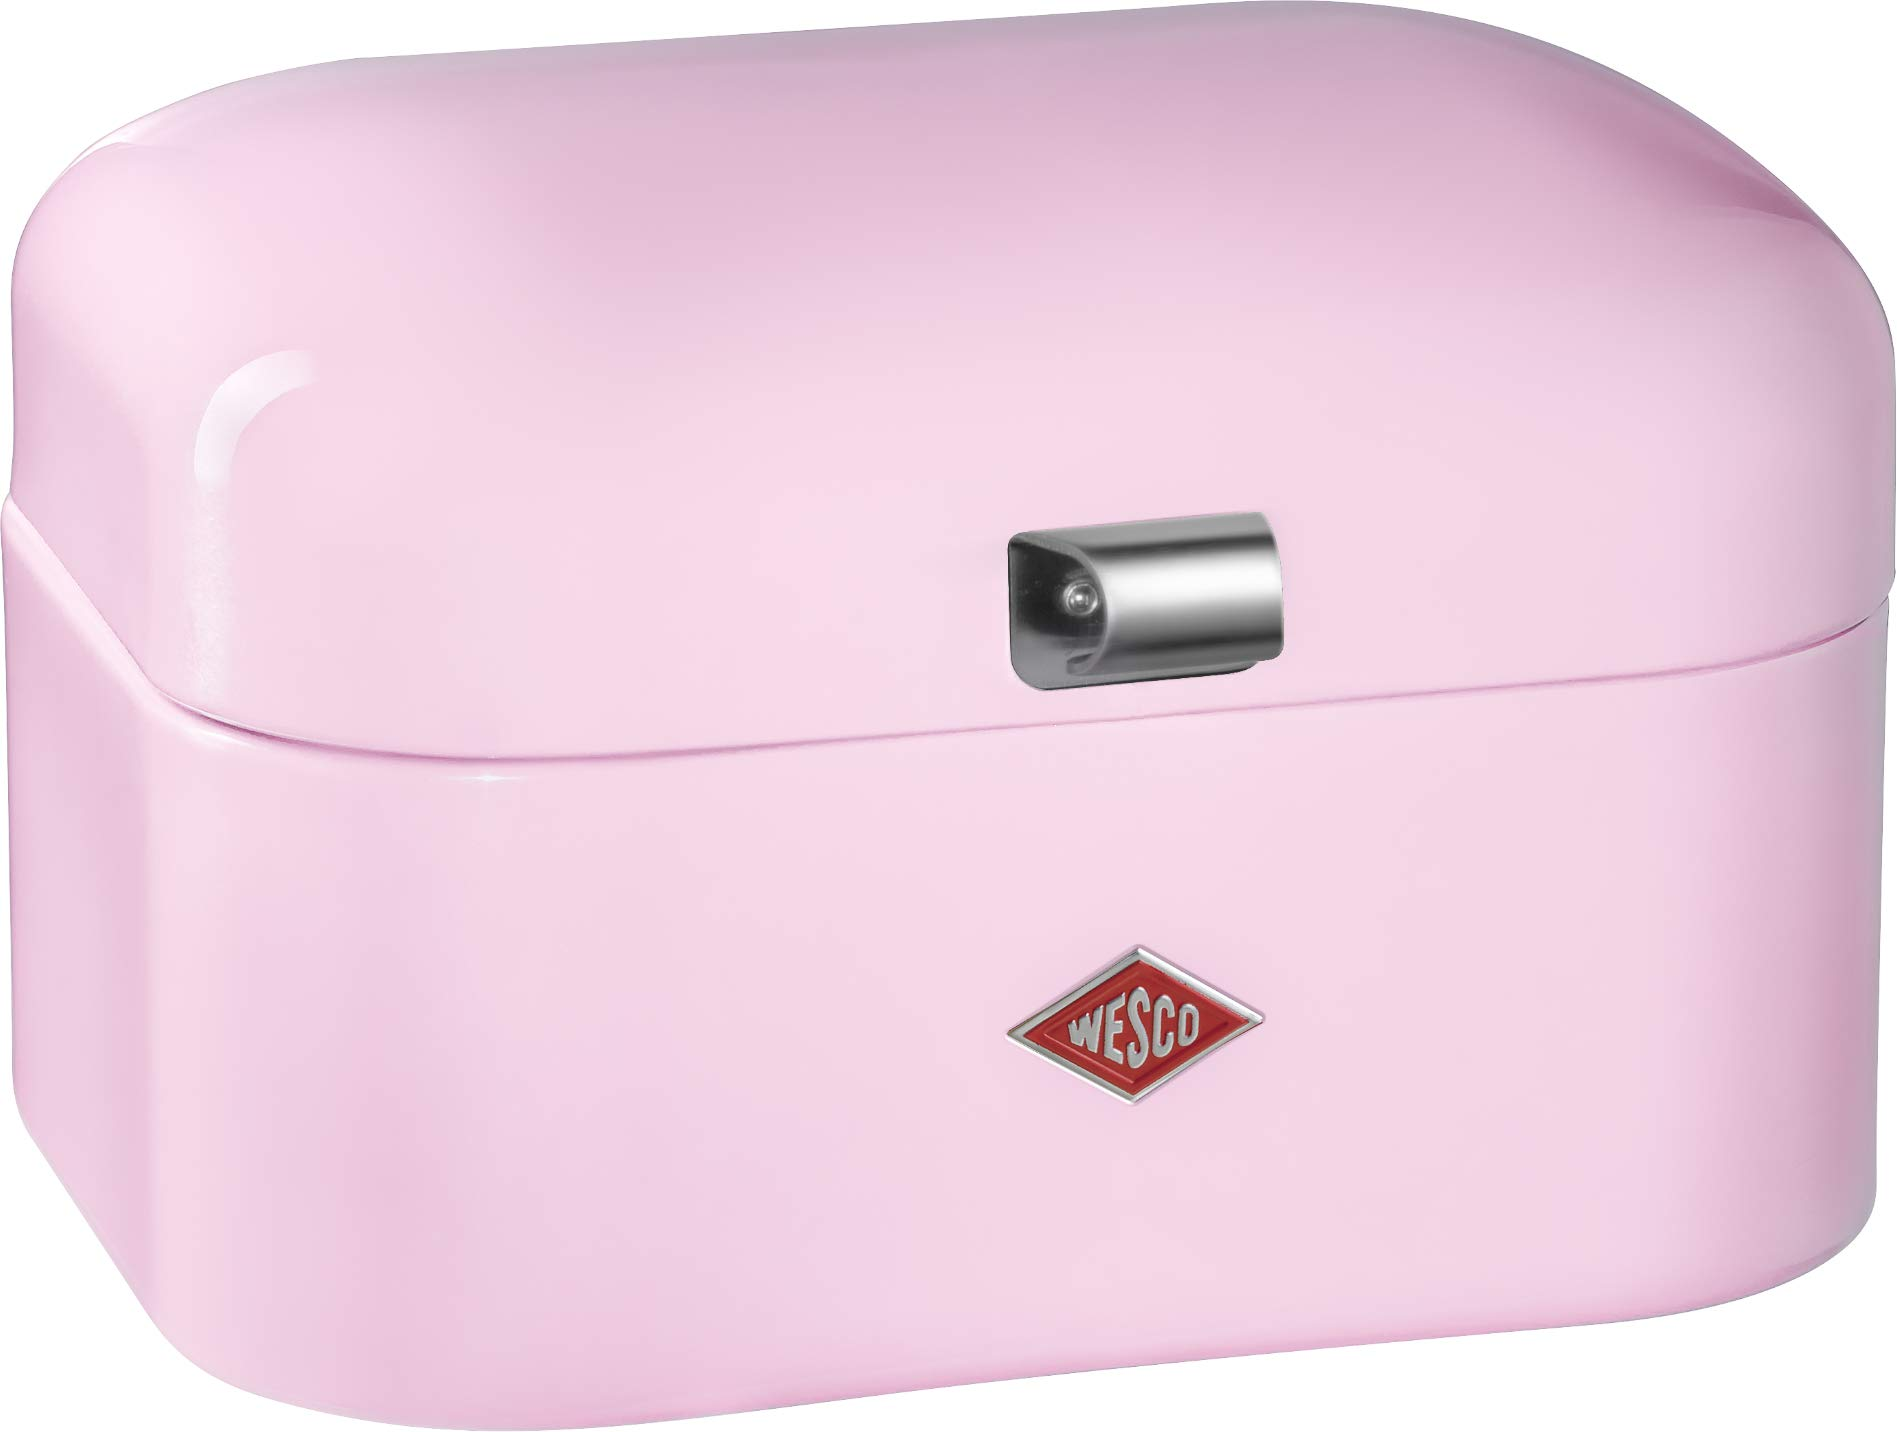 Wesco Single Grandy – Steel bread box for kitchen/storage container, Pink